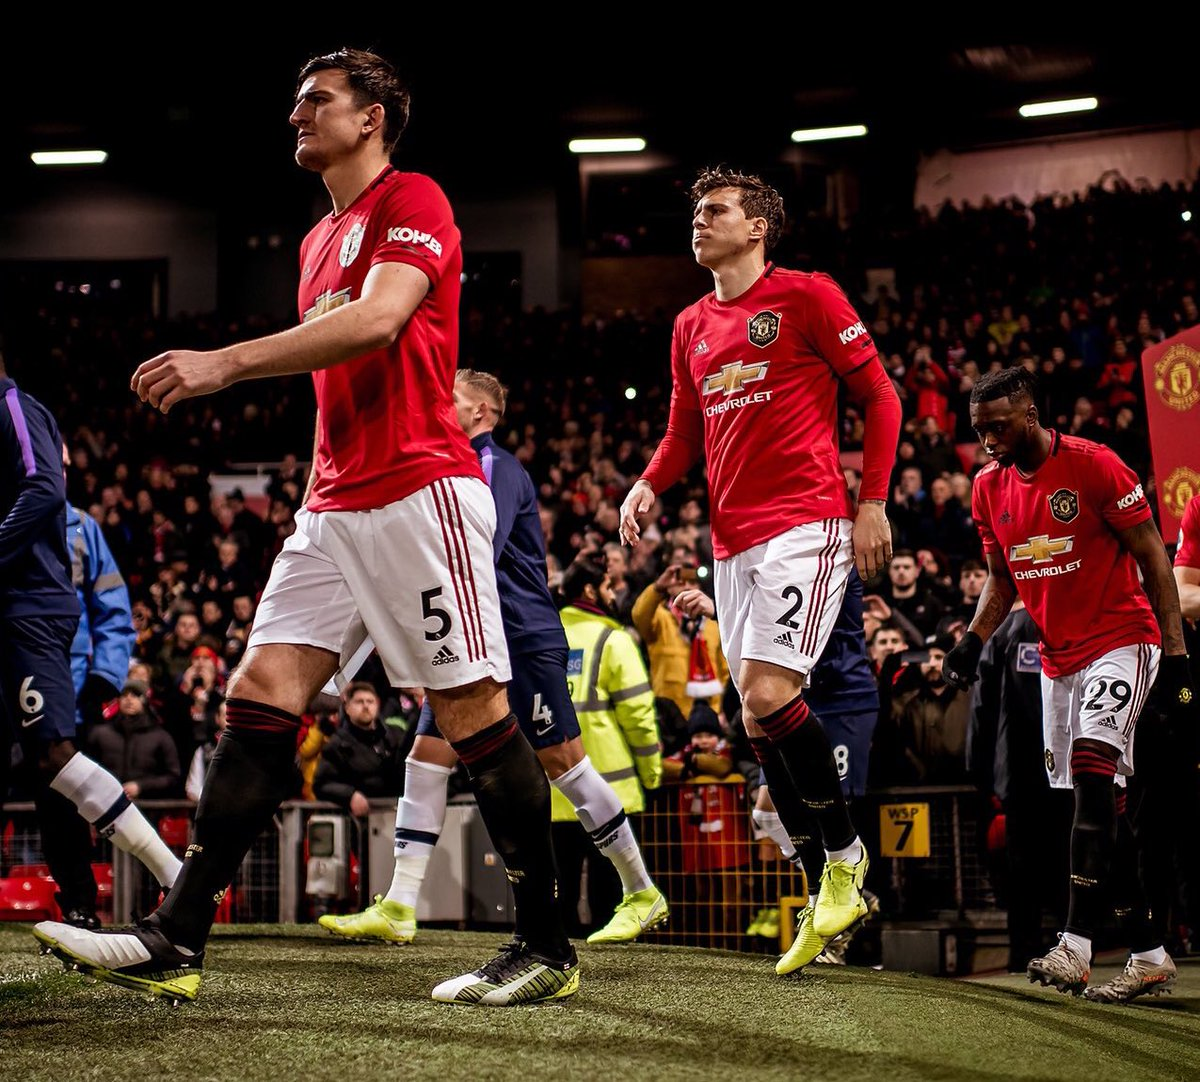 Ole Gunnar Solskjaer believes Manchester United face a pivotal Christmas period